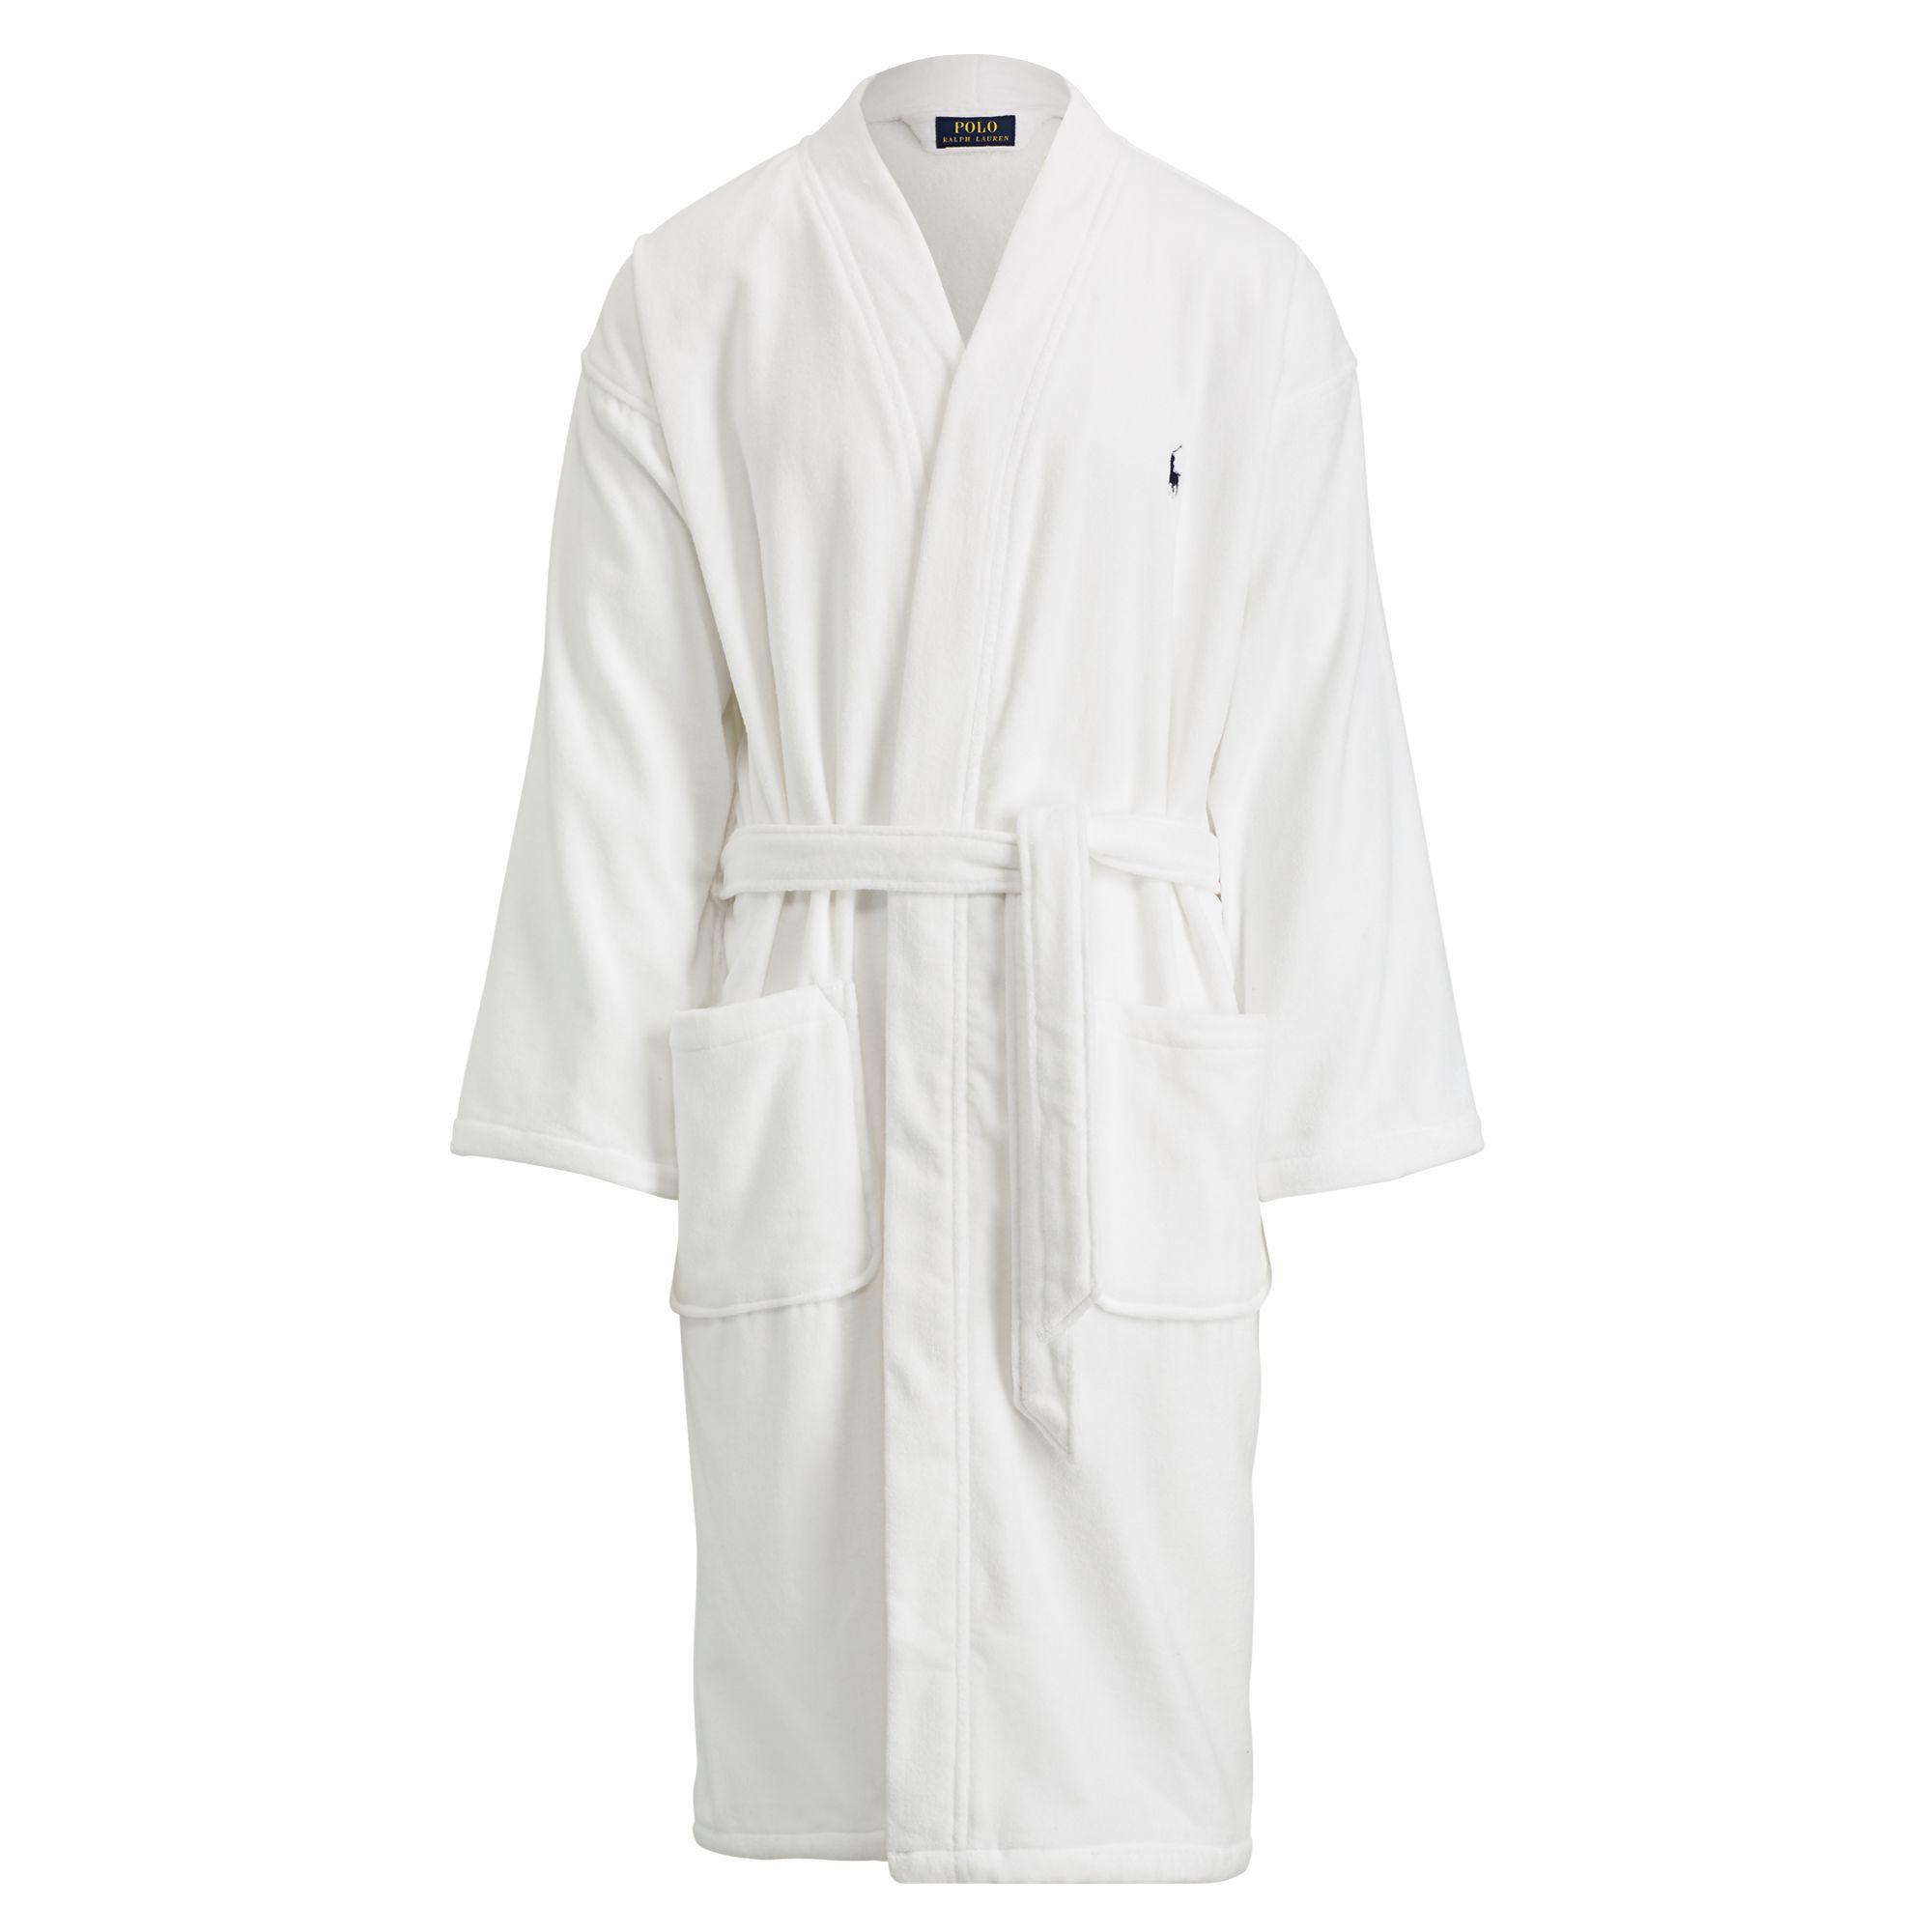 Lyst - Polo Ralph Lauren Shawl-collar Robe in White for Men c07ab6f8a9f